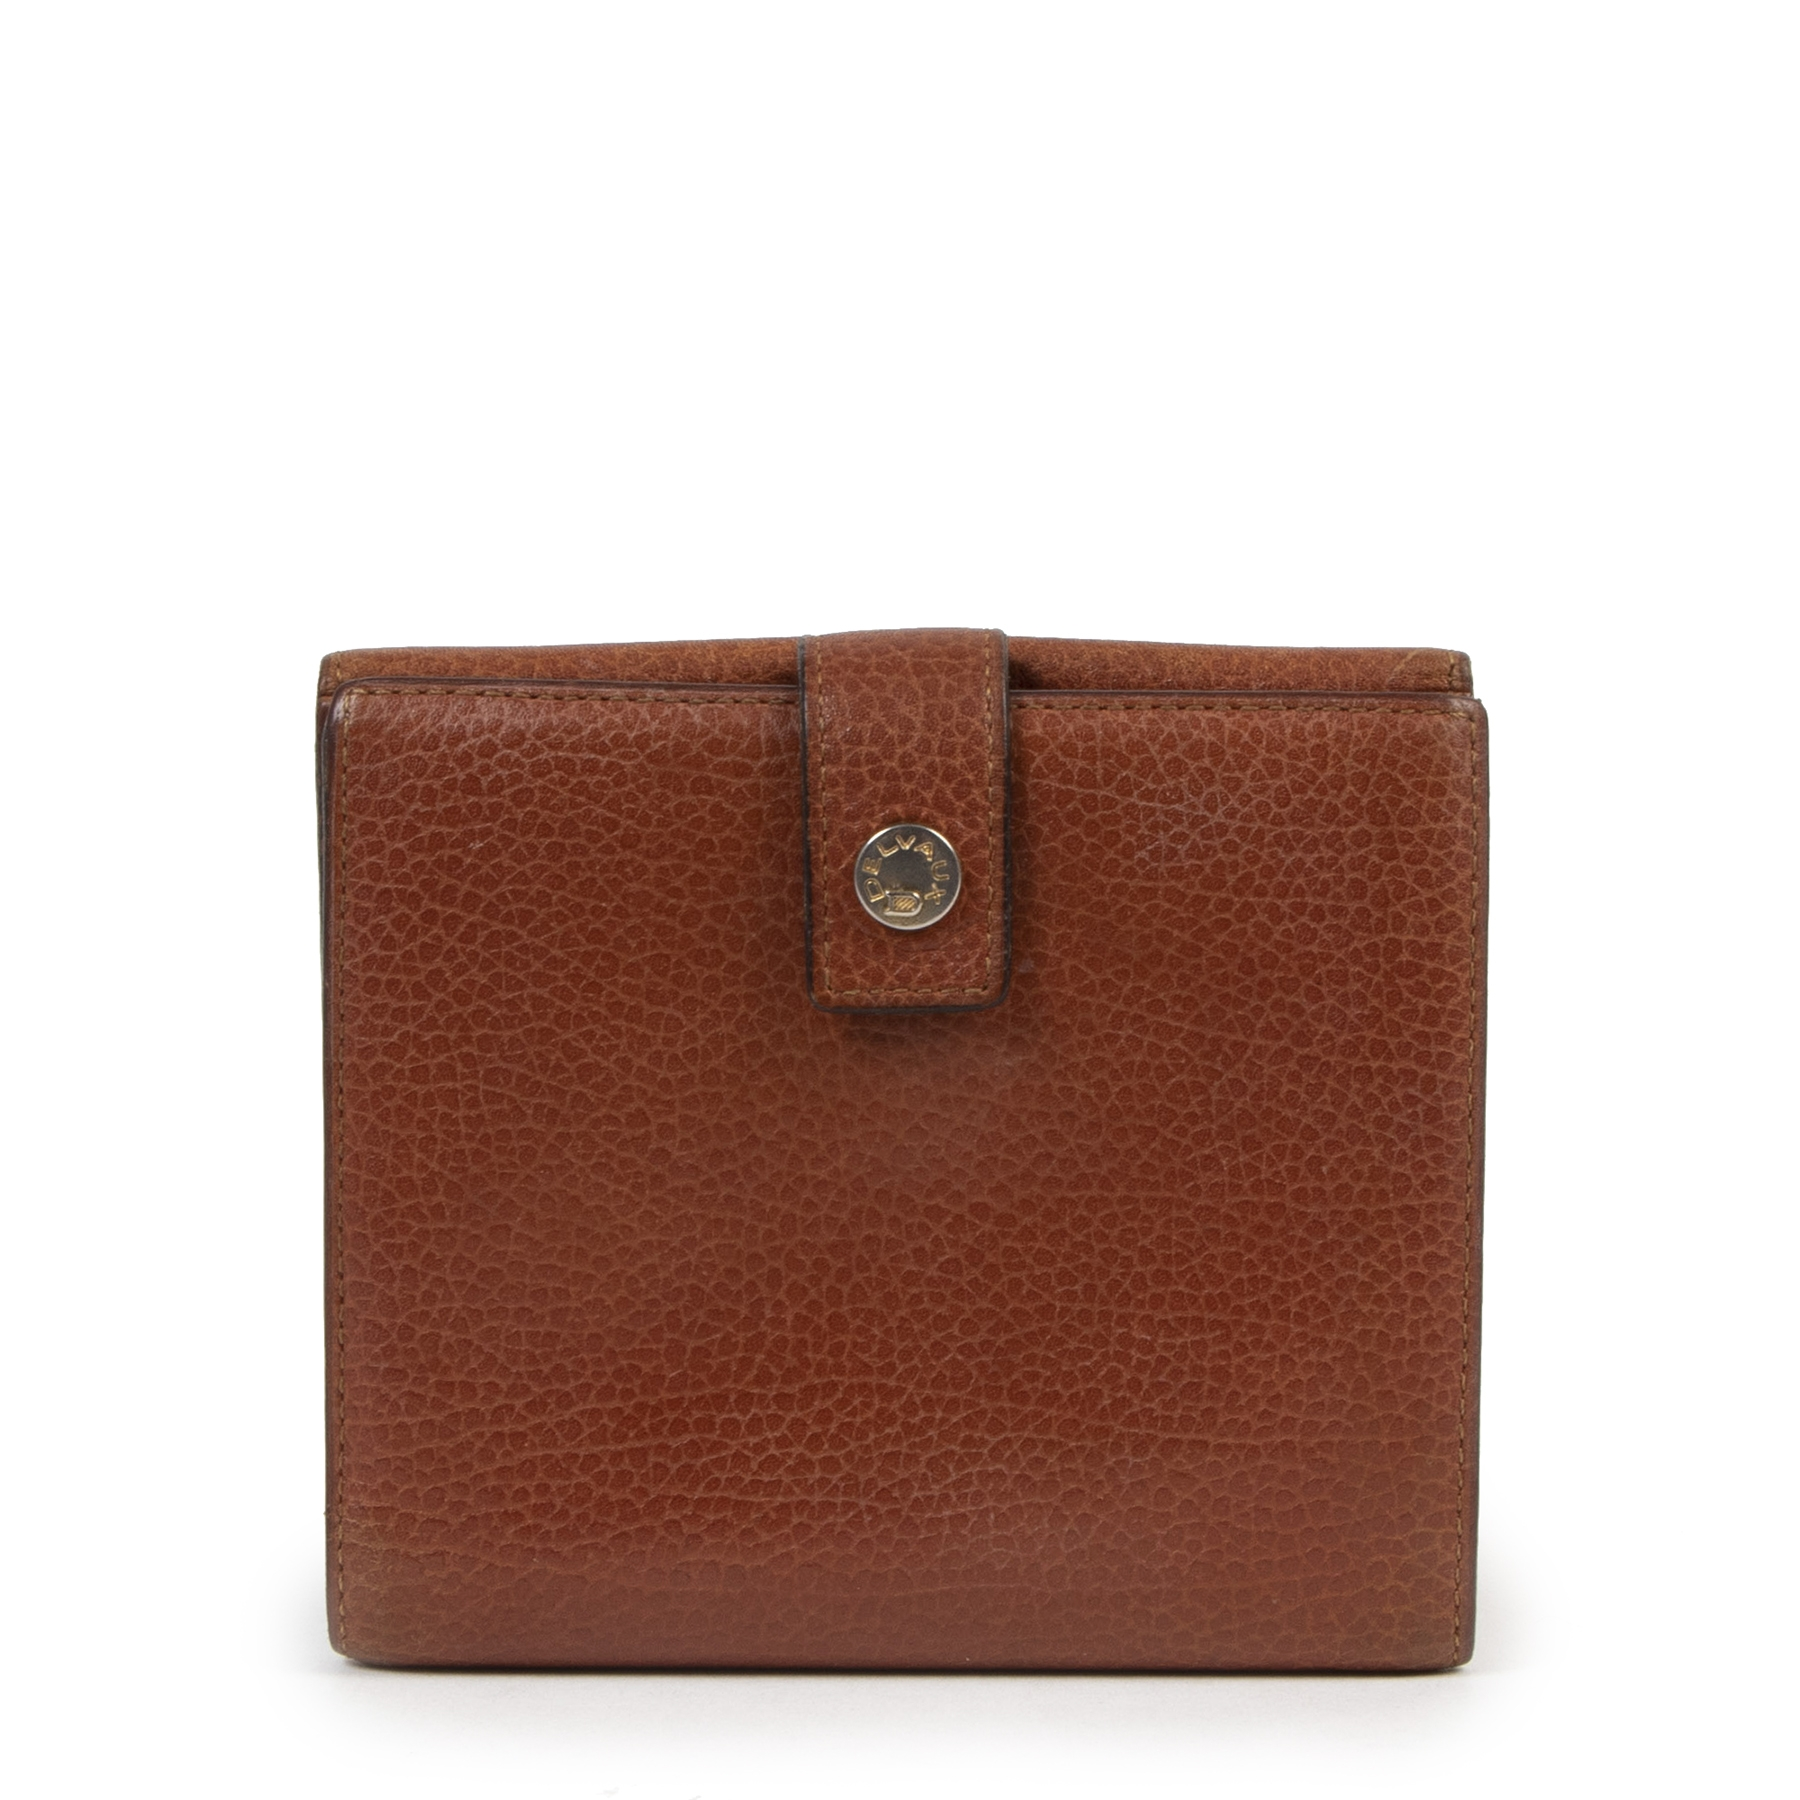 Delvaux Cognac Leather Wallet